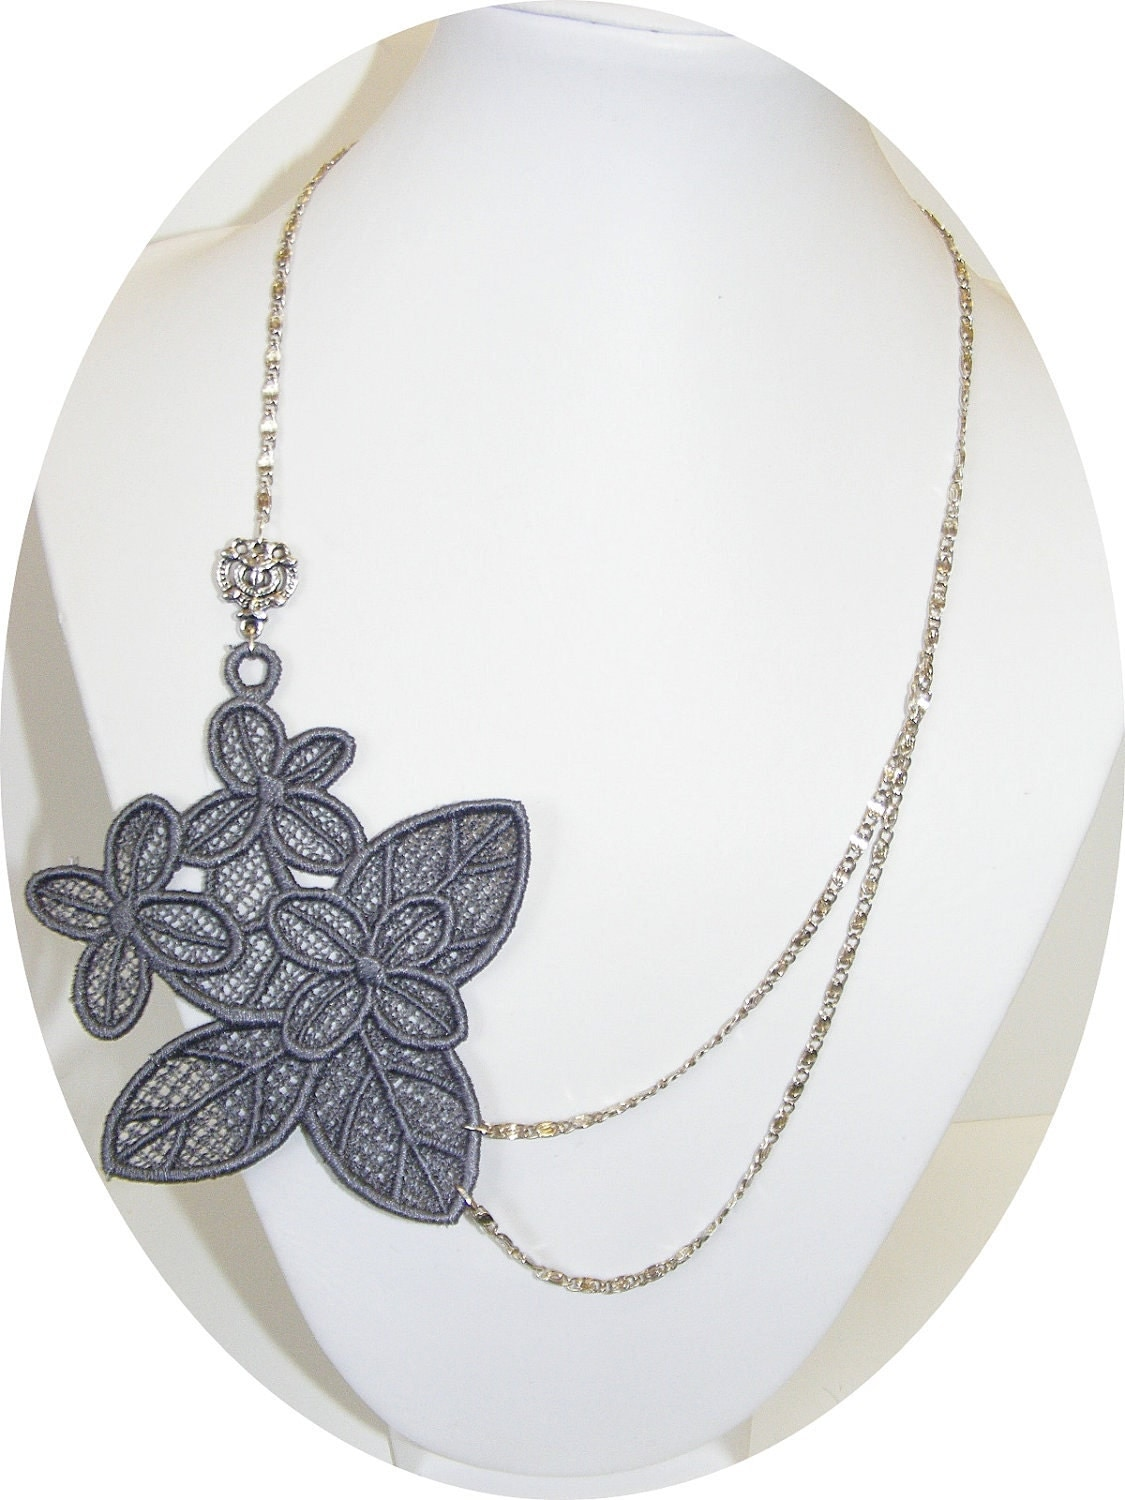 Clearance- Stunning medium grey embroidered lace necklace with art deco accents.